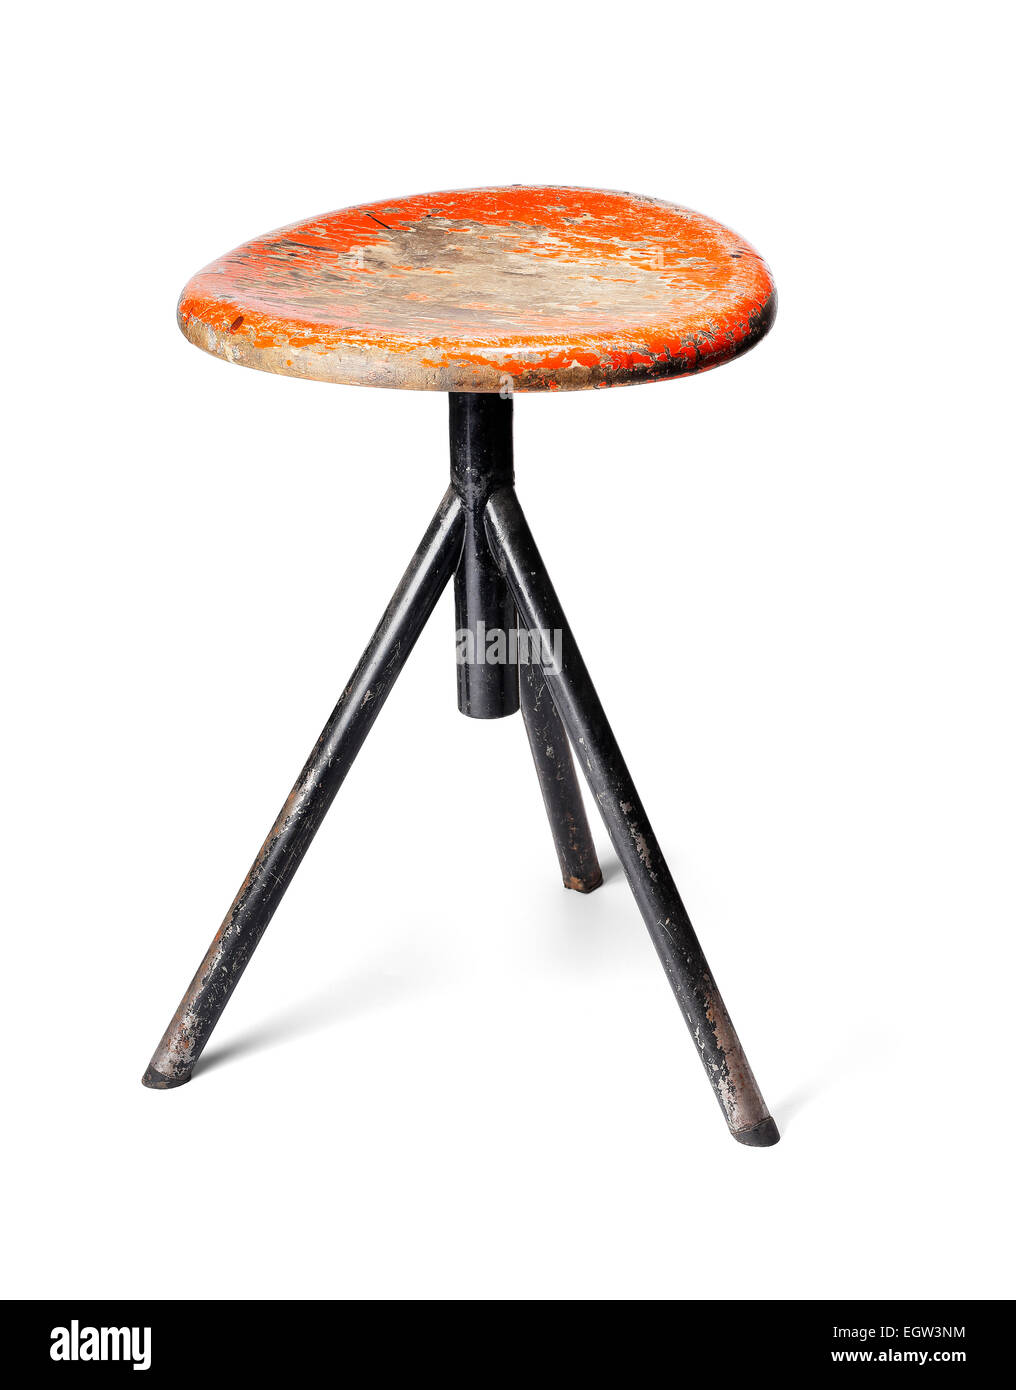 Old thee-legged stool from a workshop. Isolated on white with natural shadows. - Stock Image